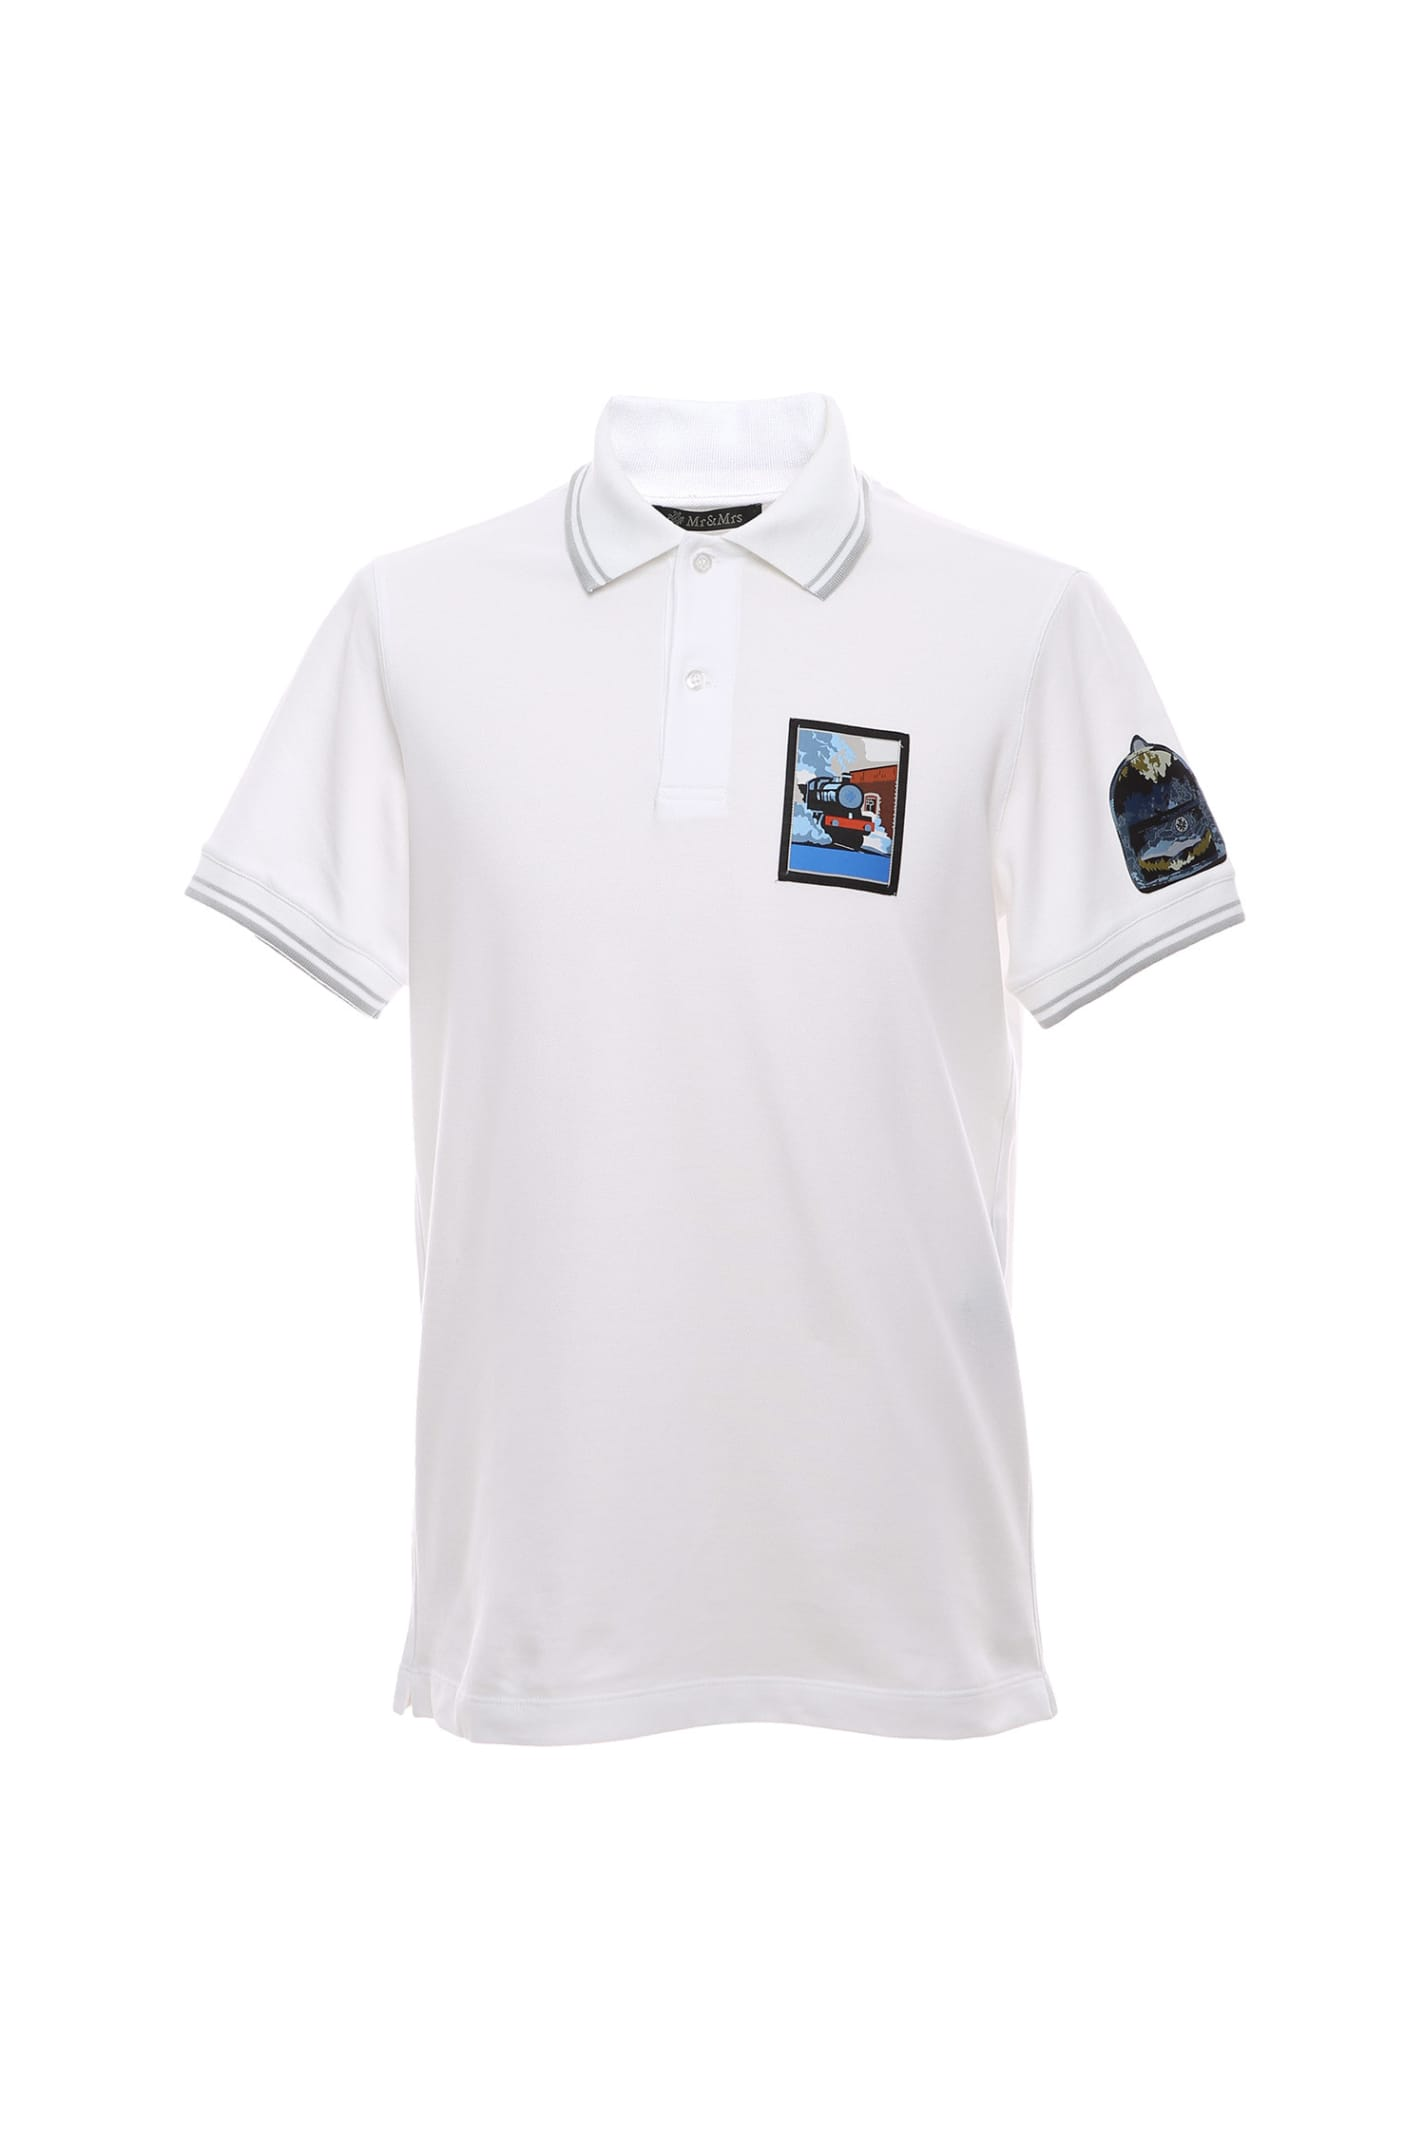 Regular Polo Shirt With Embroidered Patches